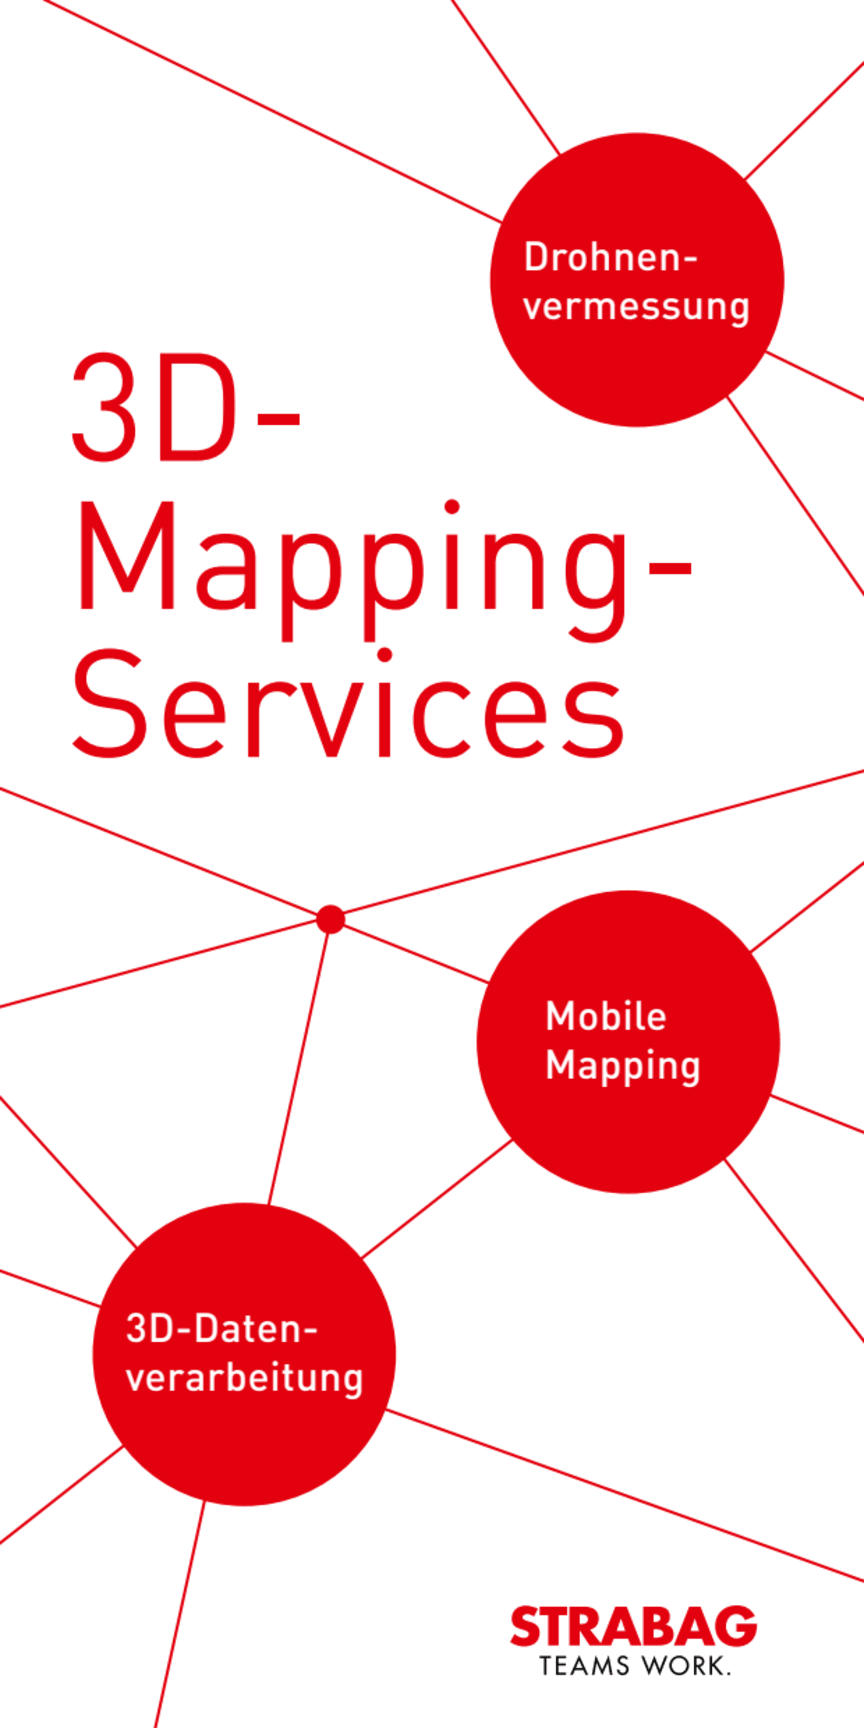 3D-Mapping-Services